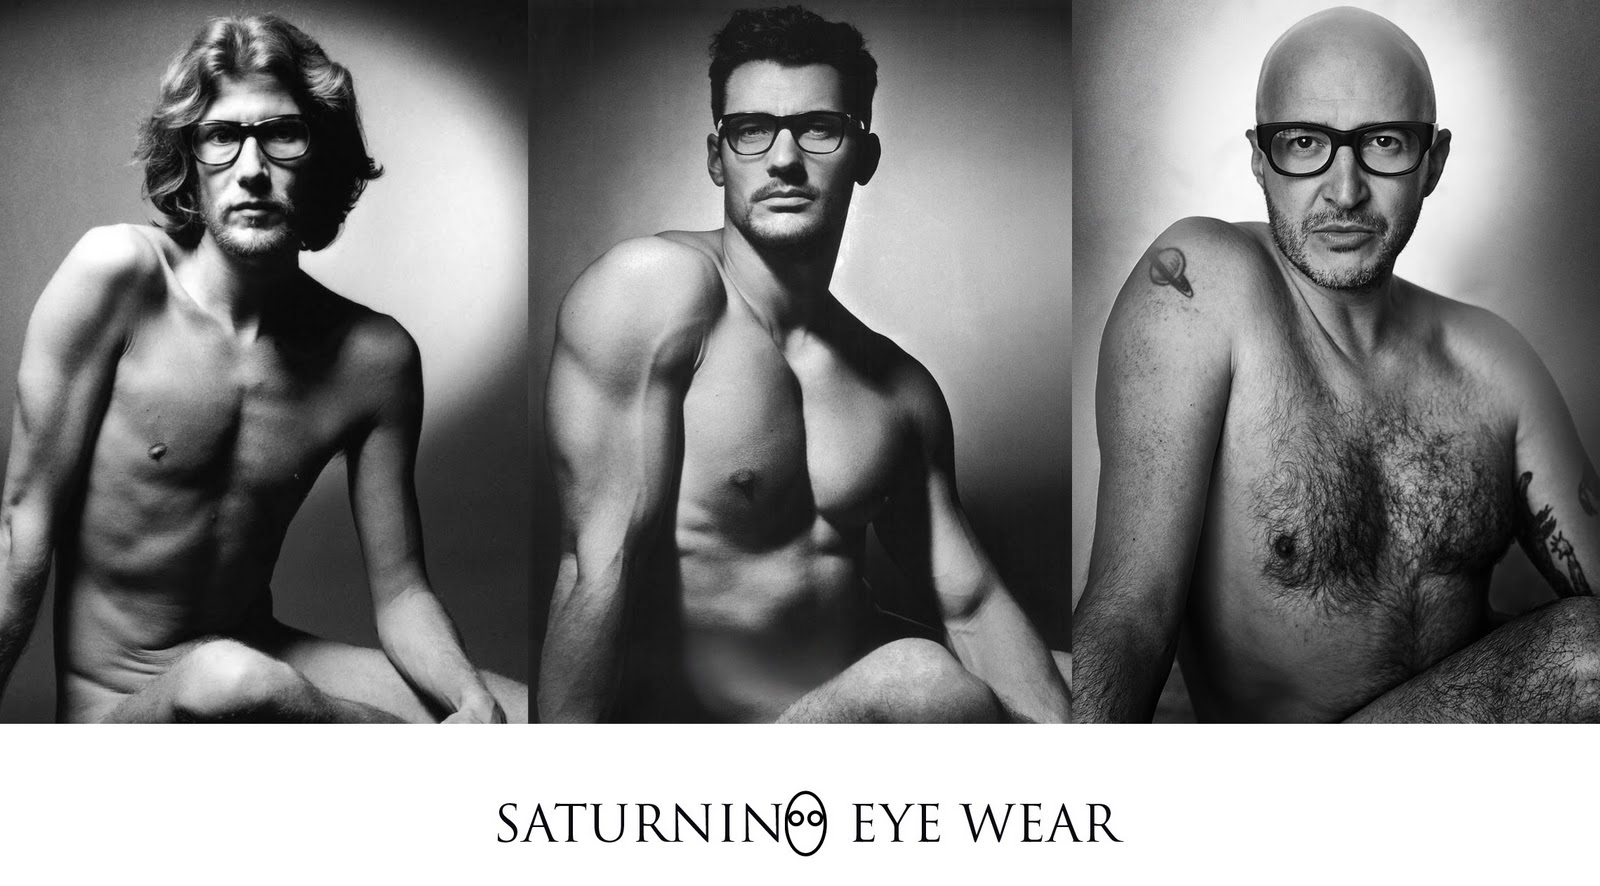 eyewear fashion  INTO THE FASHION: INTO THE FASHION 鉂? Saturnino EyeWear